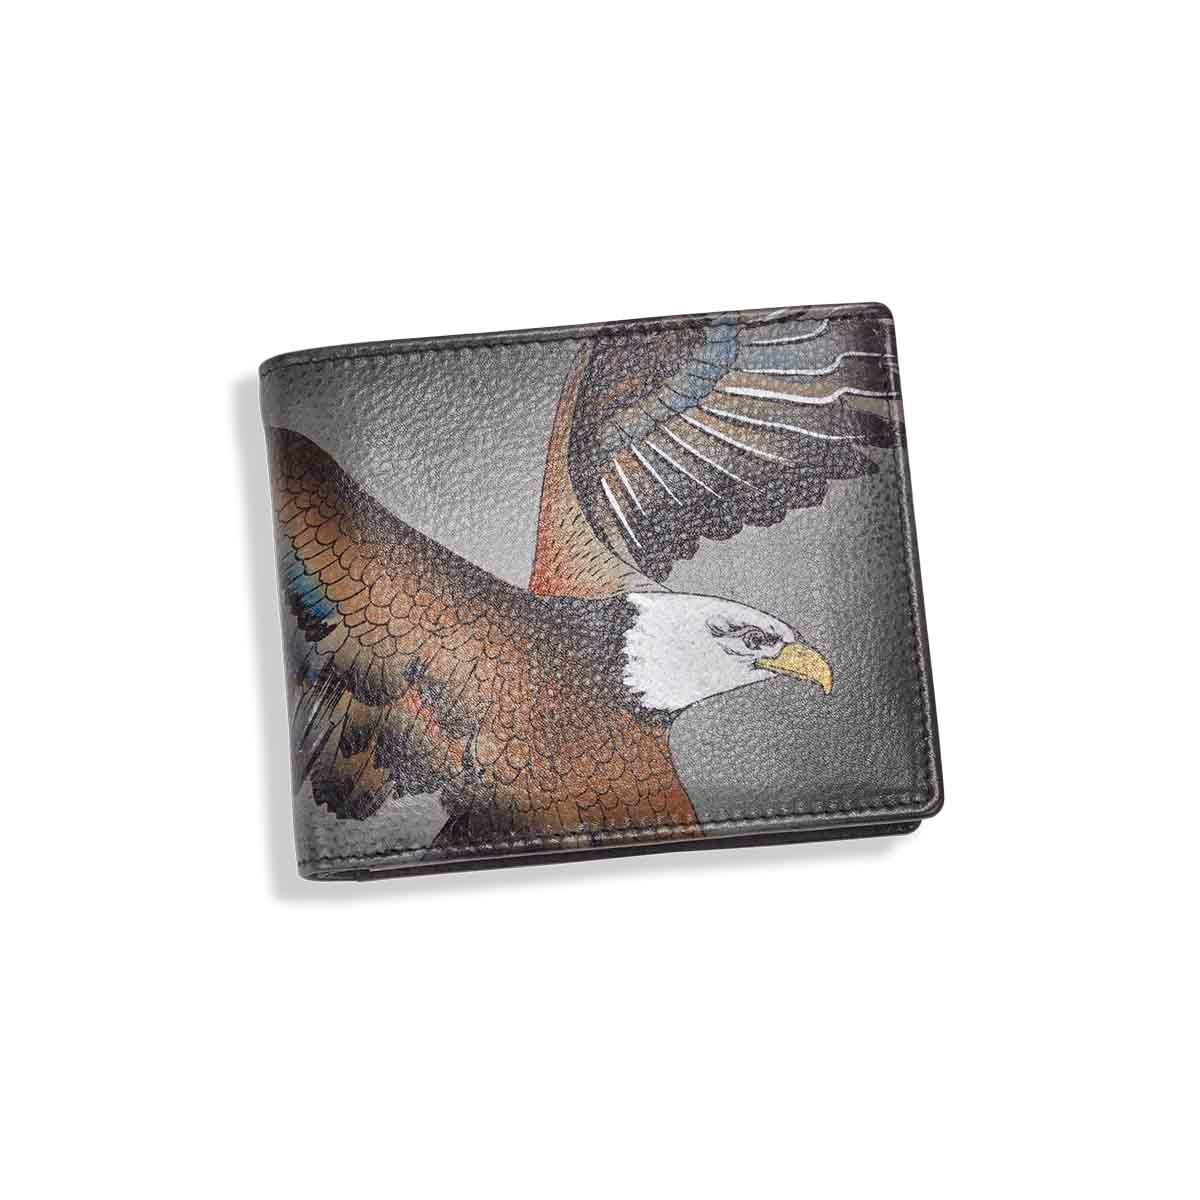 Mns painted lthr American Eagle wallet